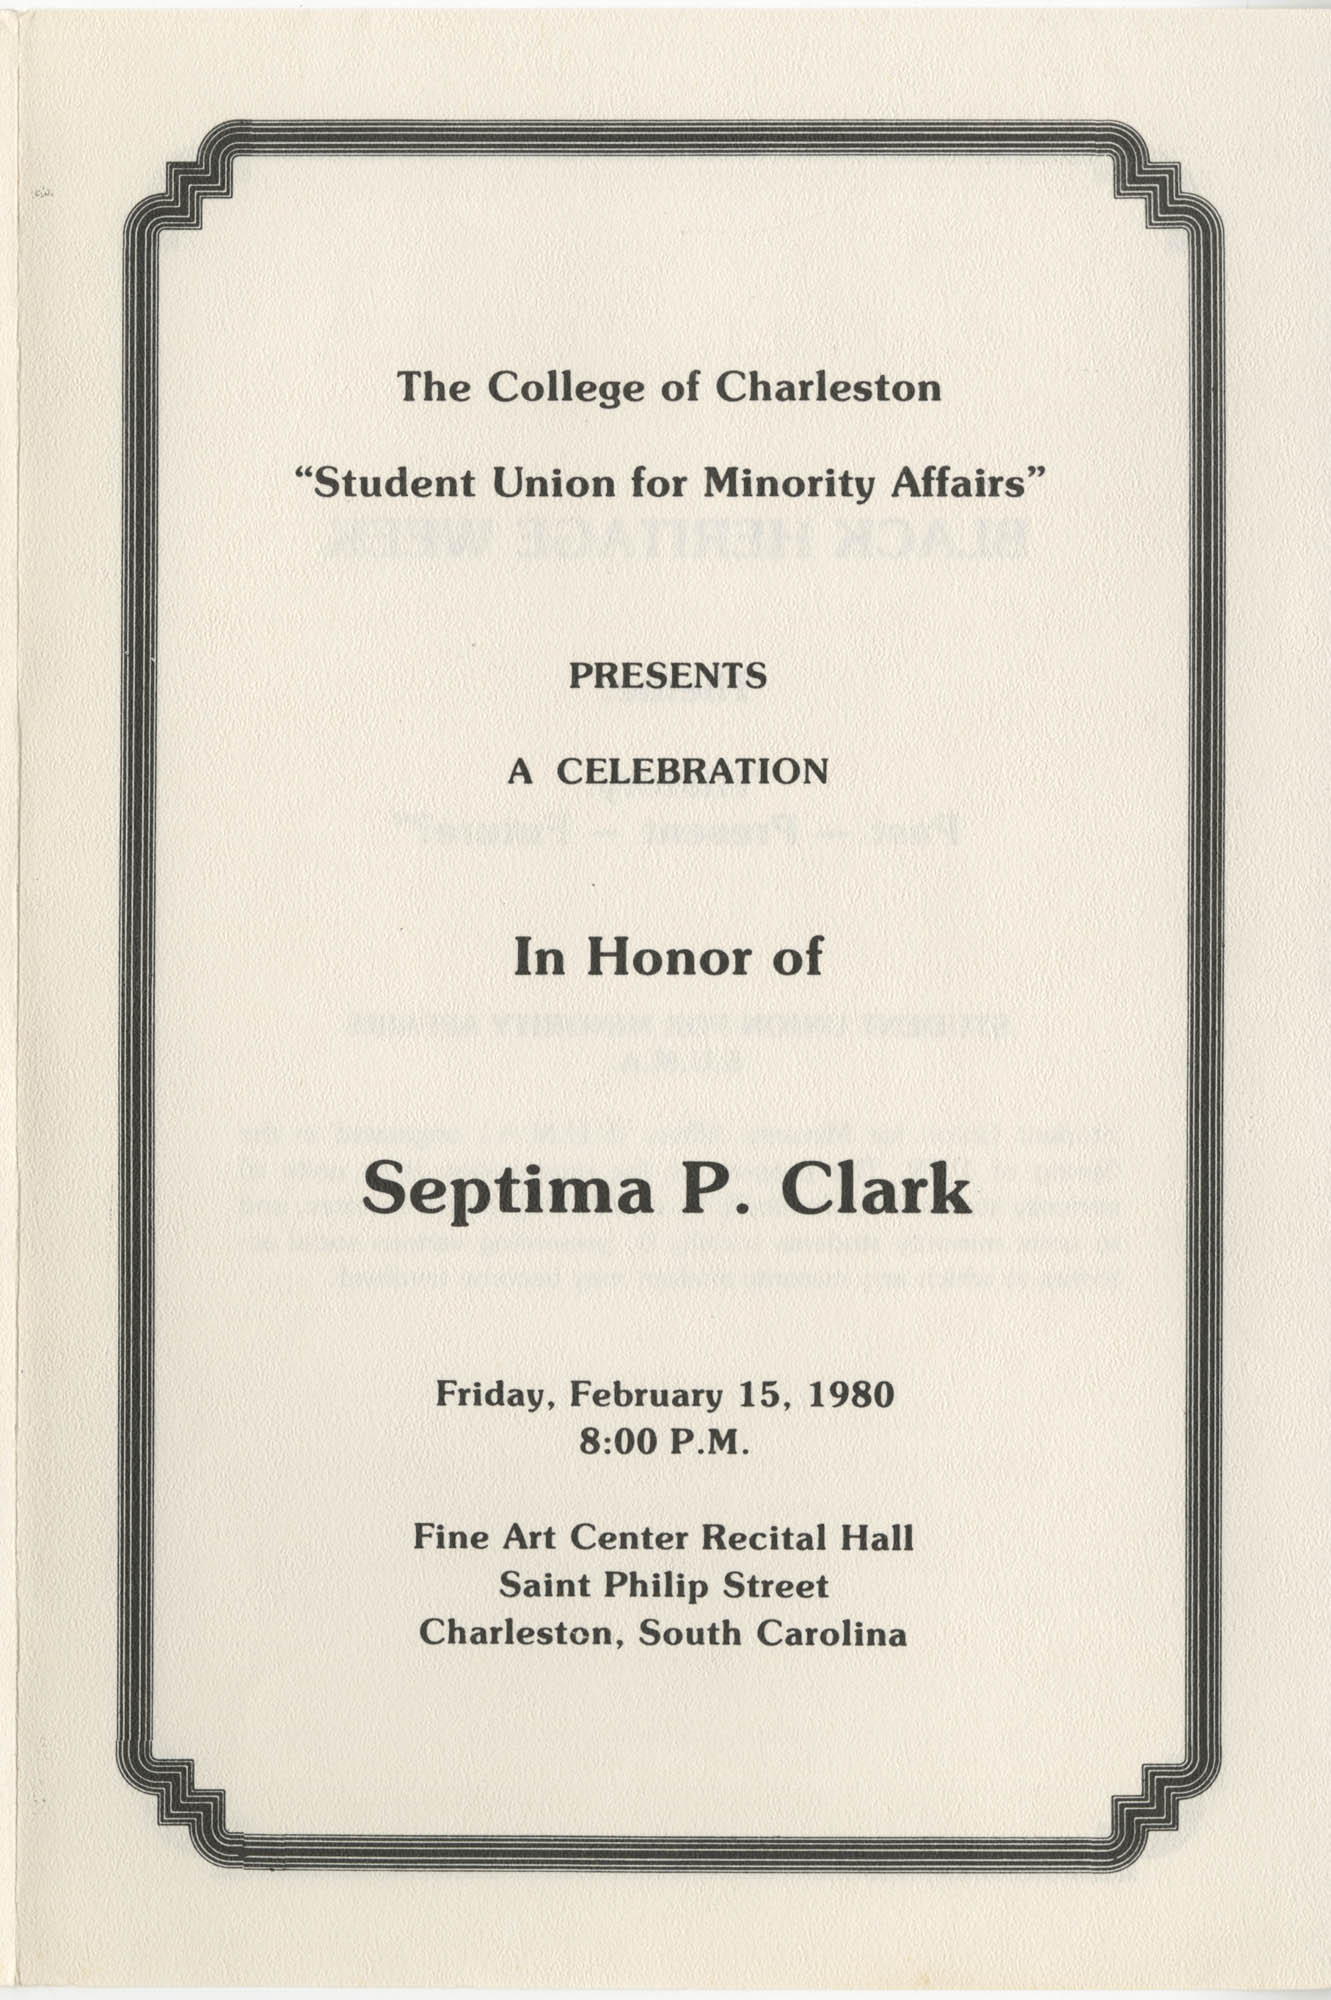 Septima P. Clark Event Program, College of Charleston, February 15, 1980